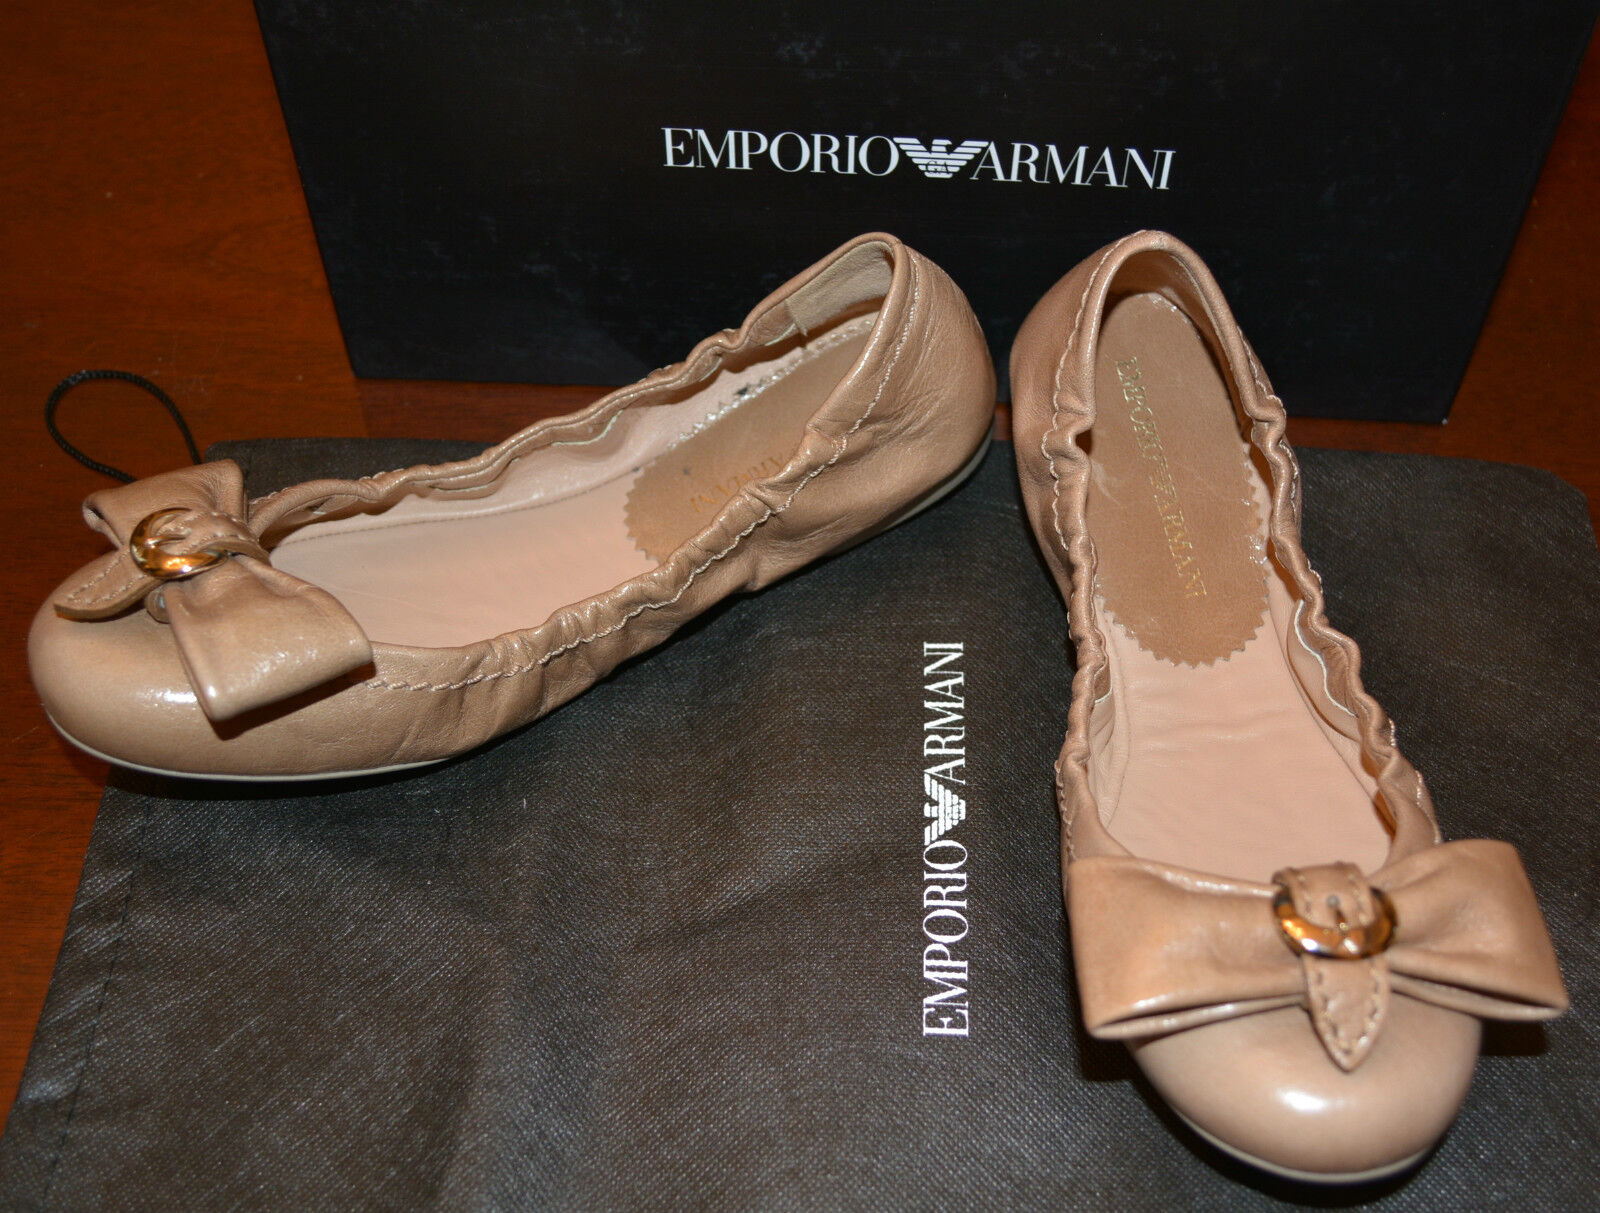 NIB EMPORIO EMPORIO EMPORIO ARMANI LEATHER FLATS SHOES  SZ US 6 EU 36  445 3ee335